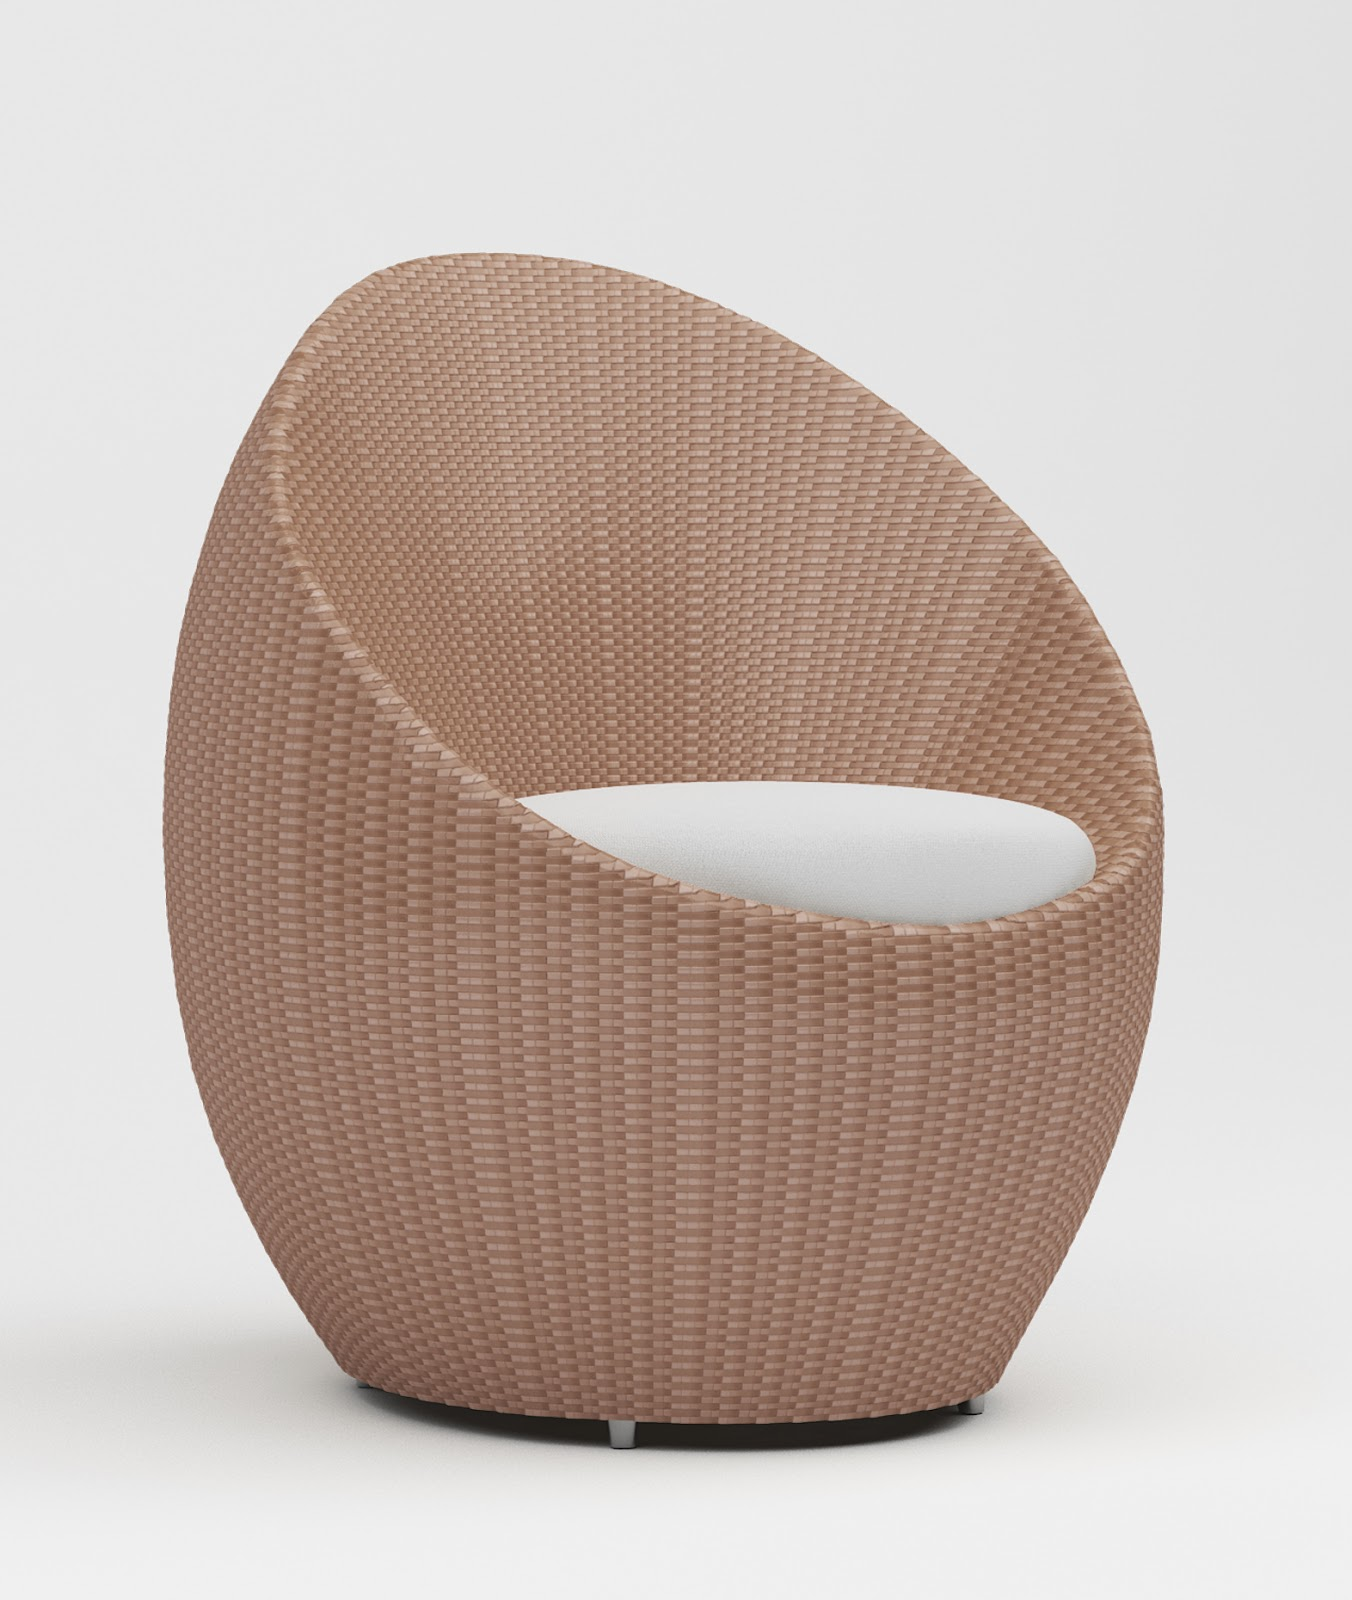 Eggshell Chair Jun Aguelo 3d Artist Eggshell Chair